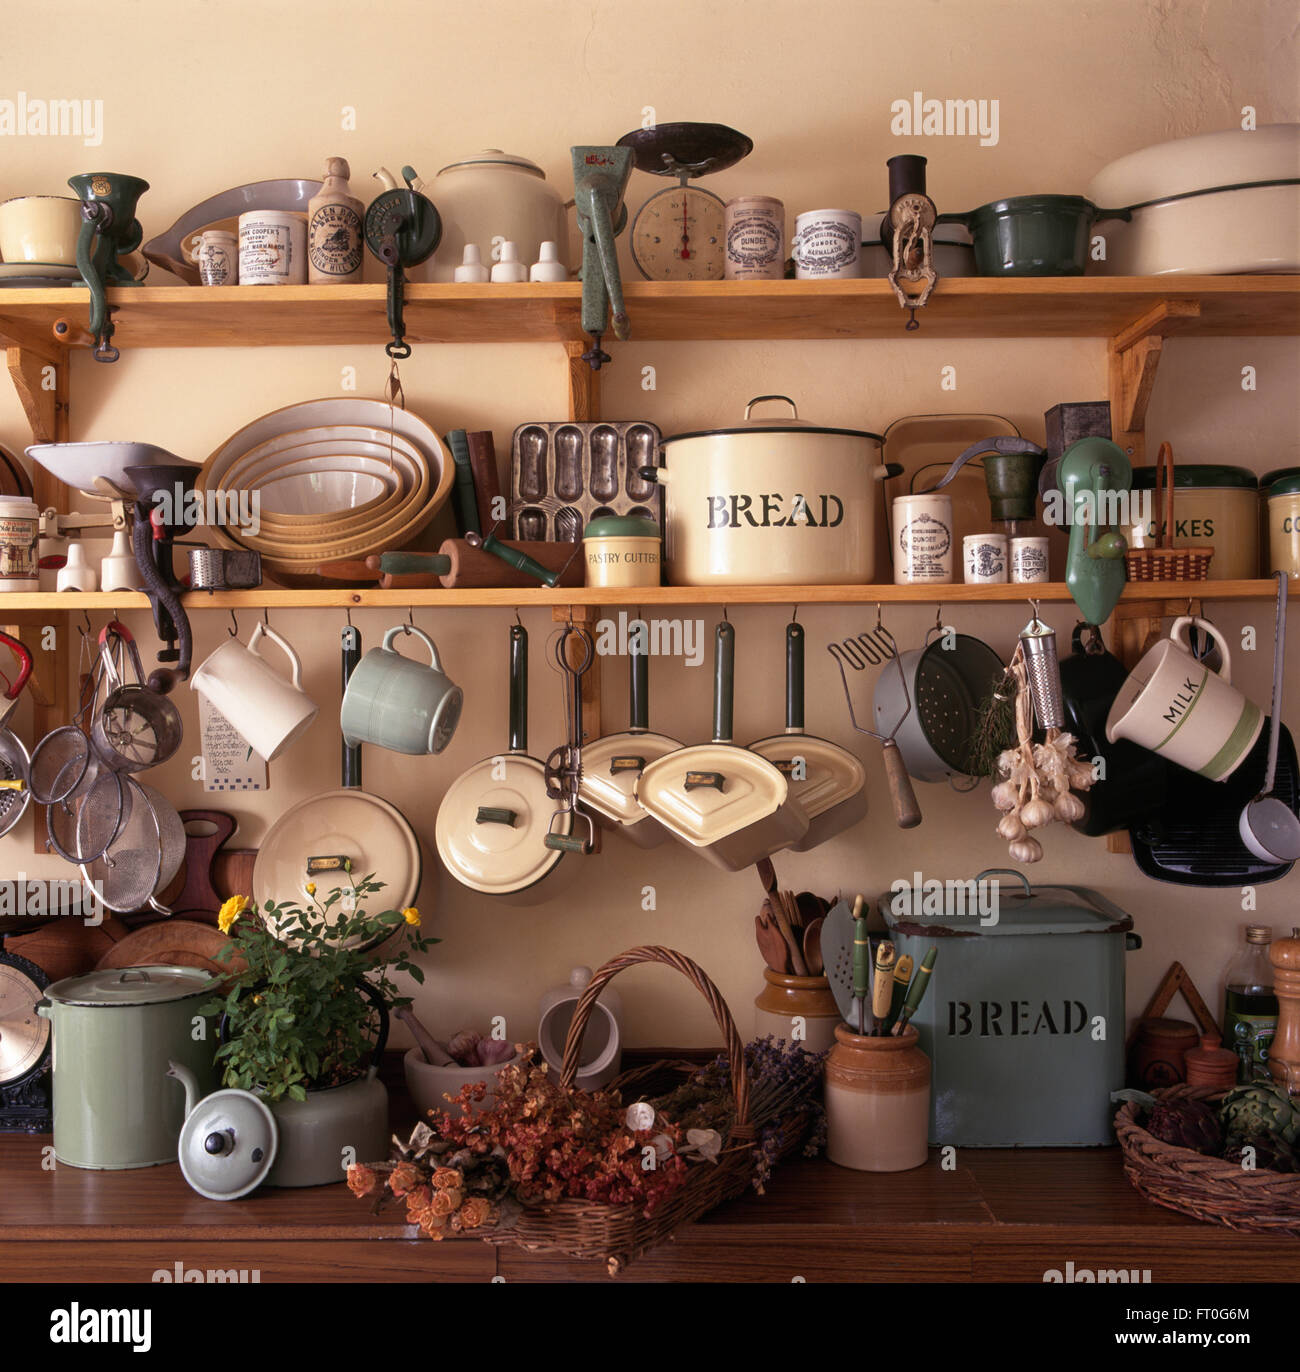 Collection of forties enamelware with pans and bread bins and earthenware vintage bowls on kitchen shelves - Stock Image